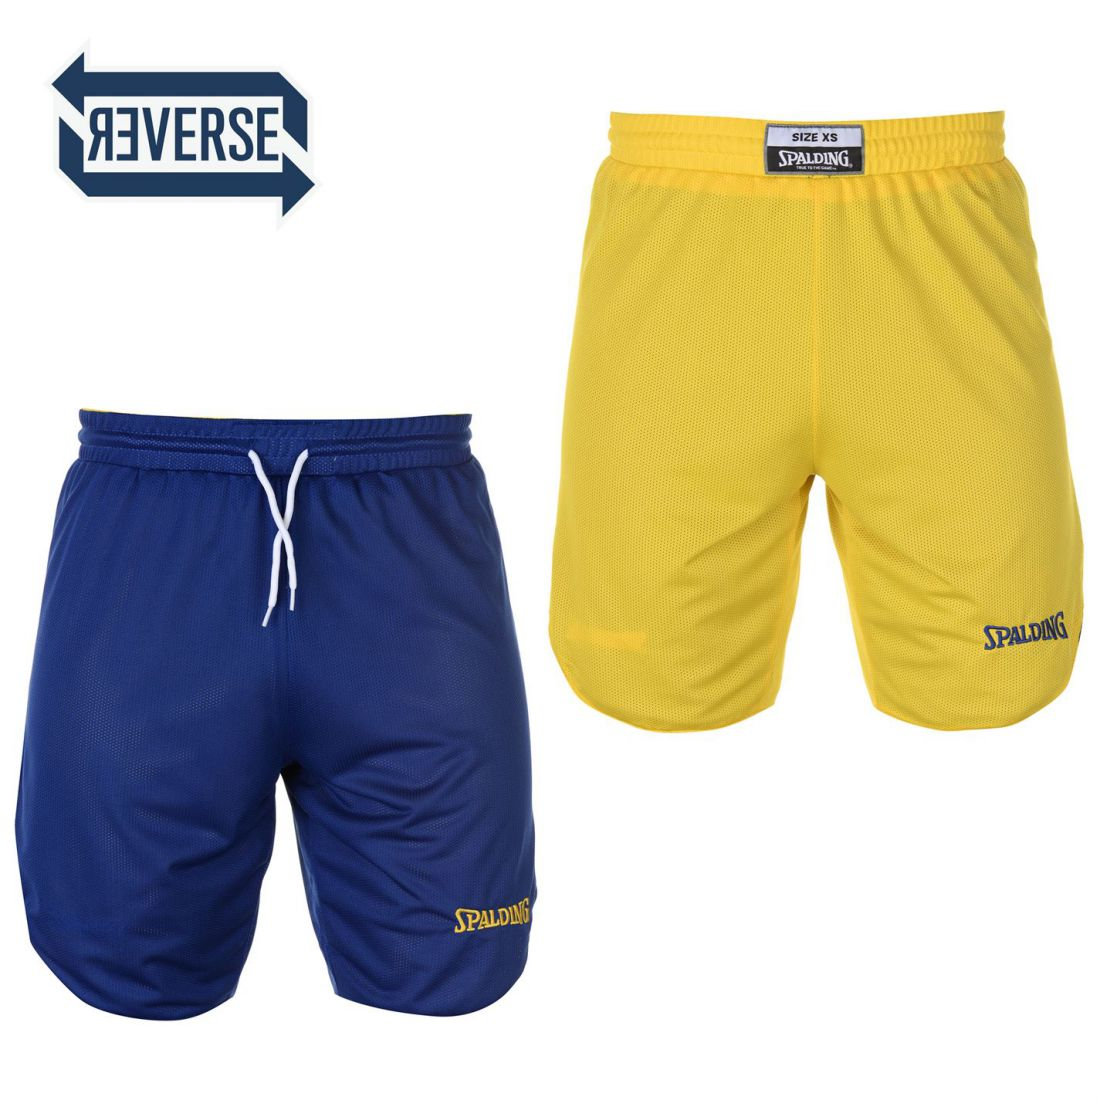 e74213b72b0a Image is loading Spalding-Mens-Reversible-Basketball -Shorts-Pants-Trousers-Bottoms-